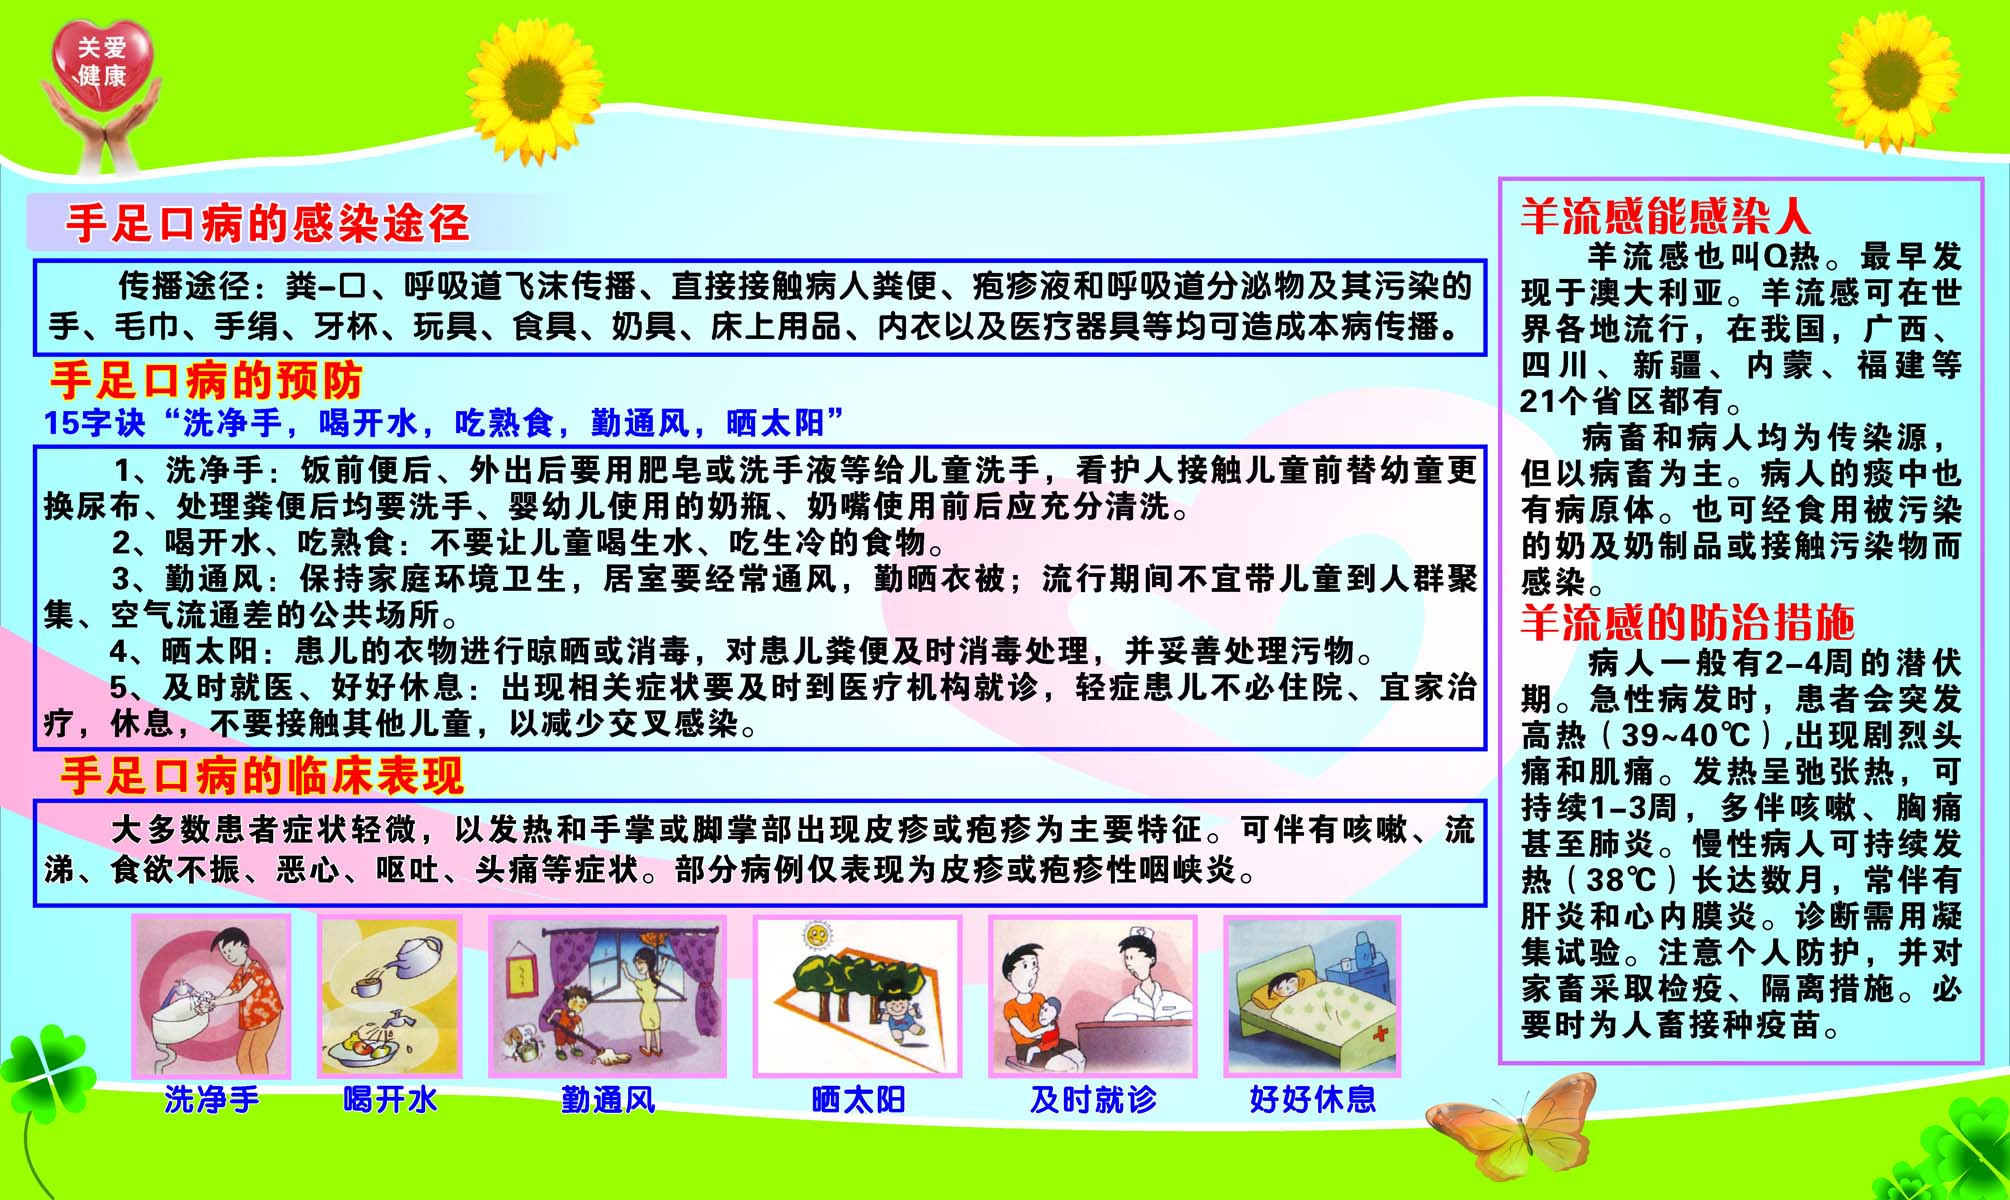 41 common diseases flipchart poster panels 125 hfmd poster poster poster printing